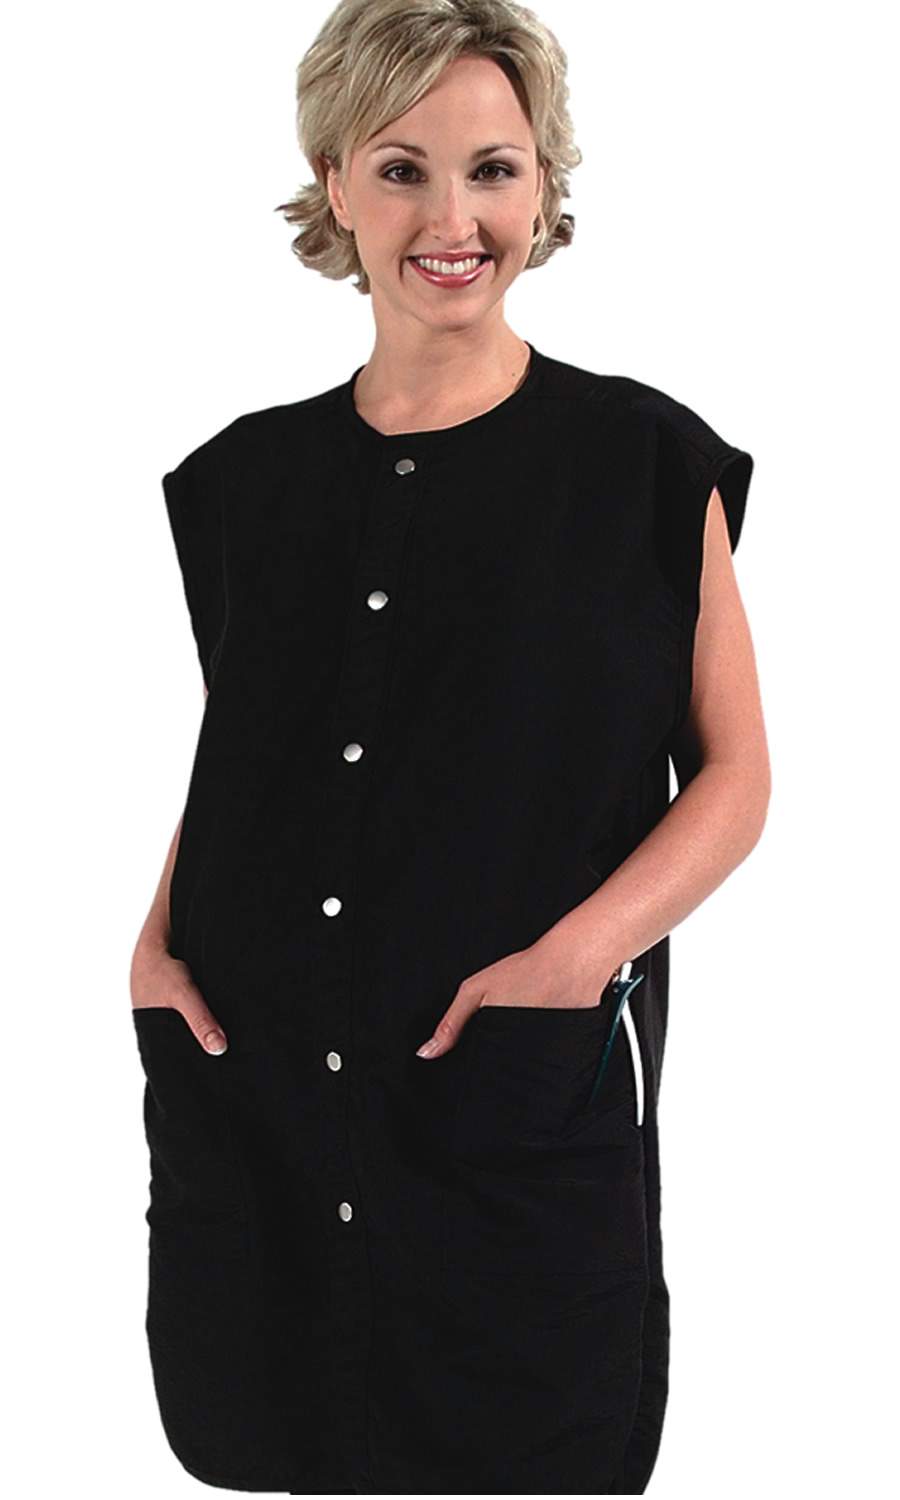 Free Shipping Stylist Barber Unisex Vest 9907 In